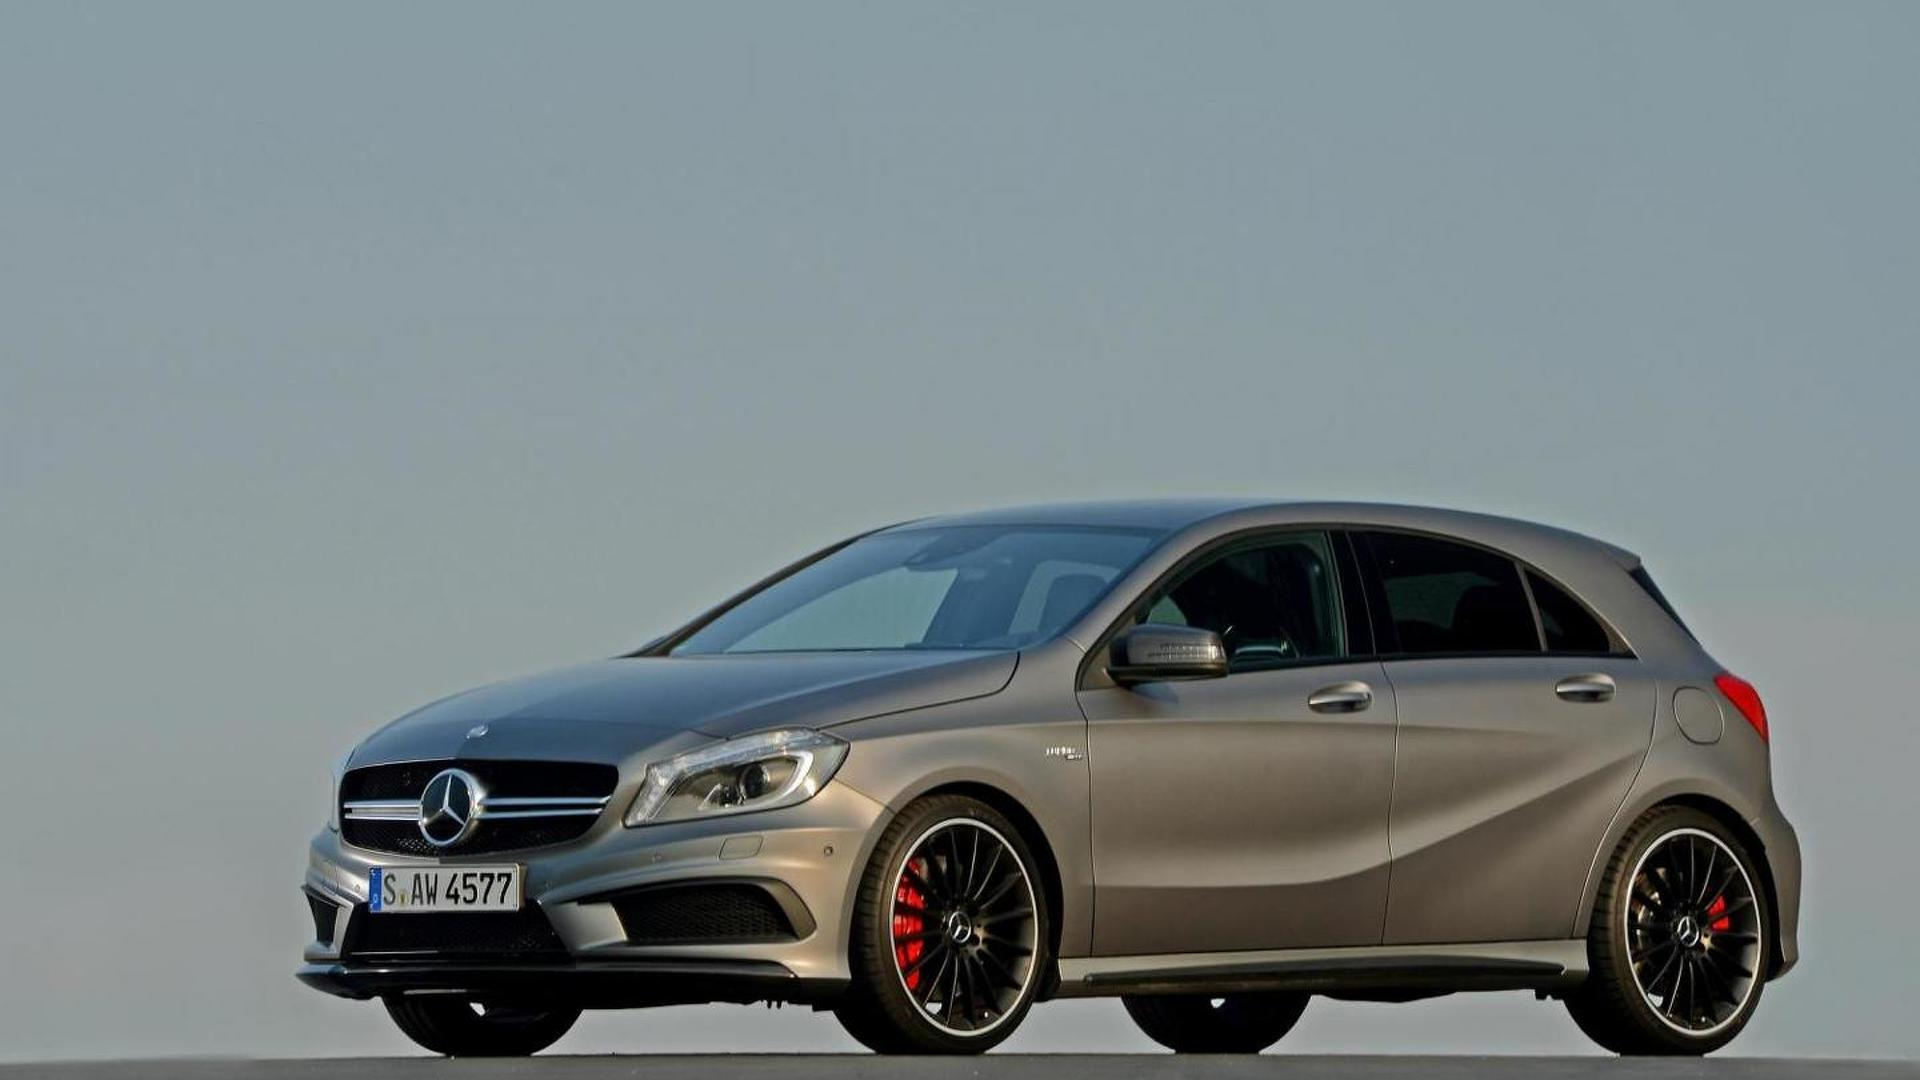 Mercedes-Benz A 45 AMG priced from 37,845 GBP